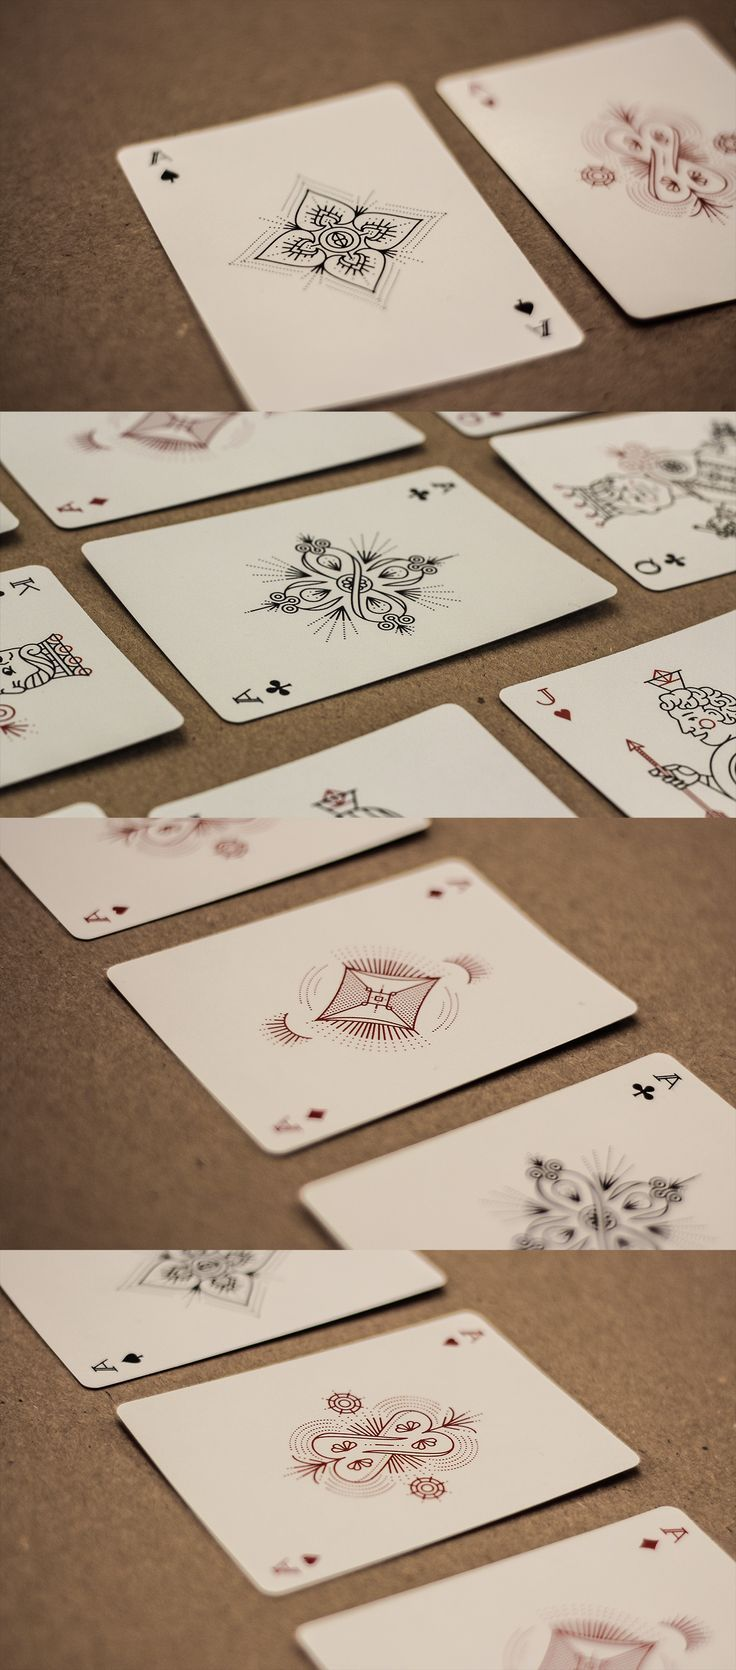 Pin by 卓 梁 on poker playing cards design card design